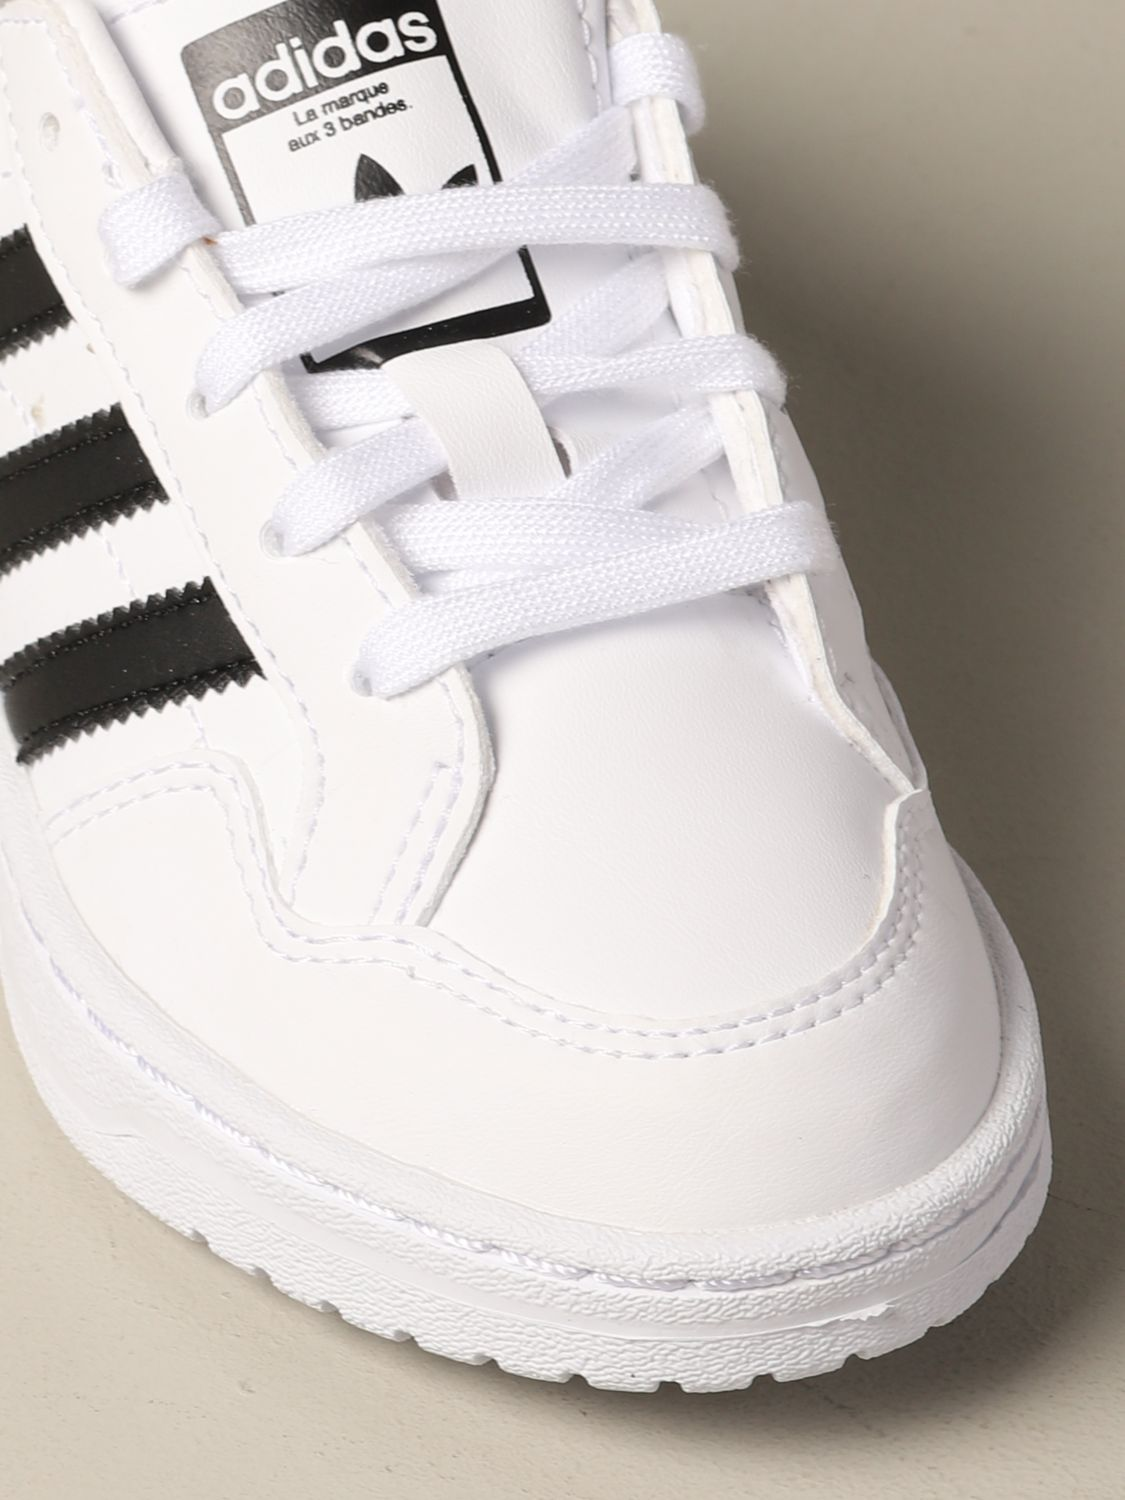 Shoes Adidas Originals: Shoes kids Adidas Originals white 4